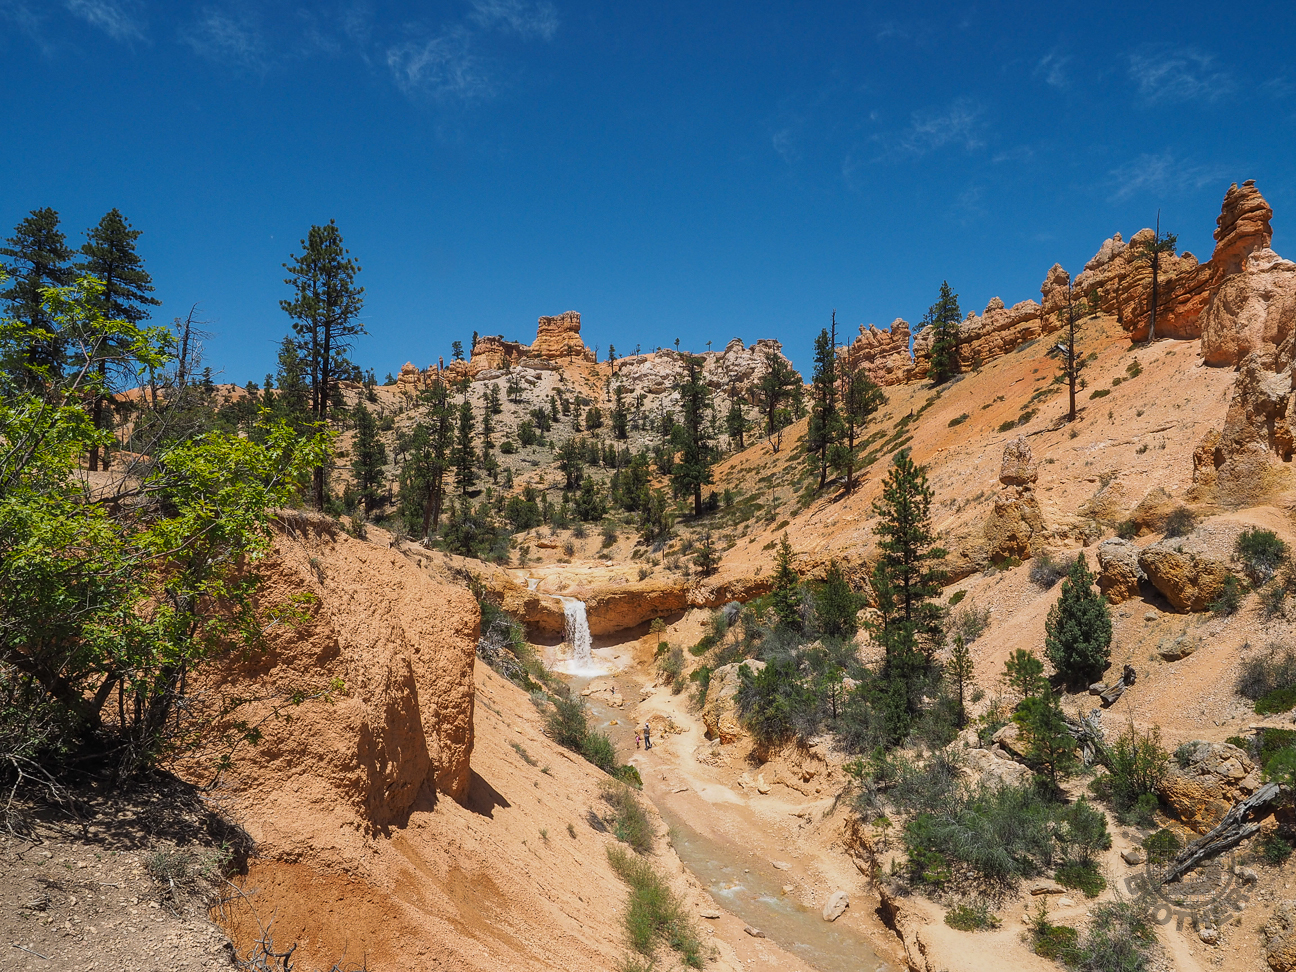 Meanderthals | Mossy Cave Trail, Bryce Canyon National Park